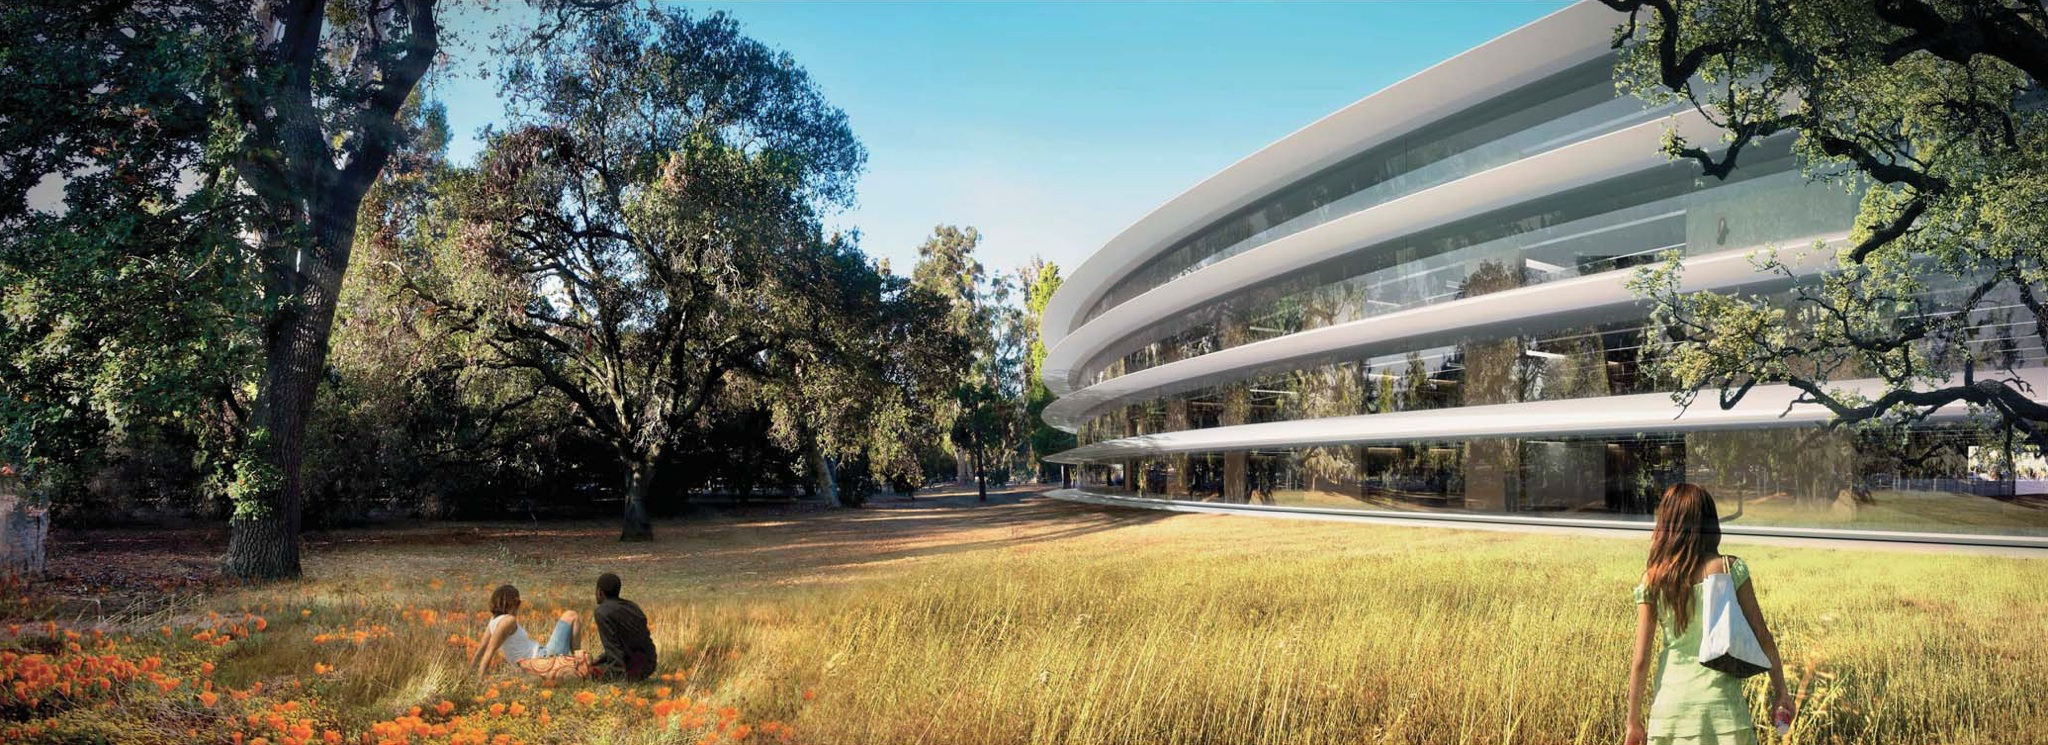 Apple Campus 2 (Rendering 007, Retina-optimized)